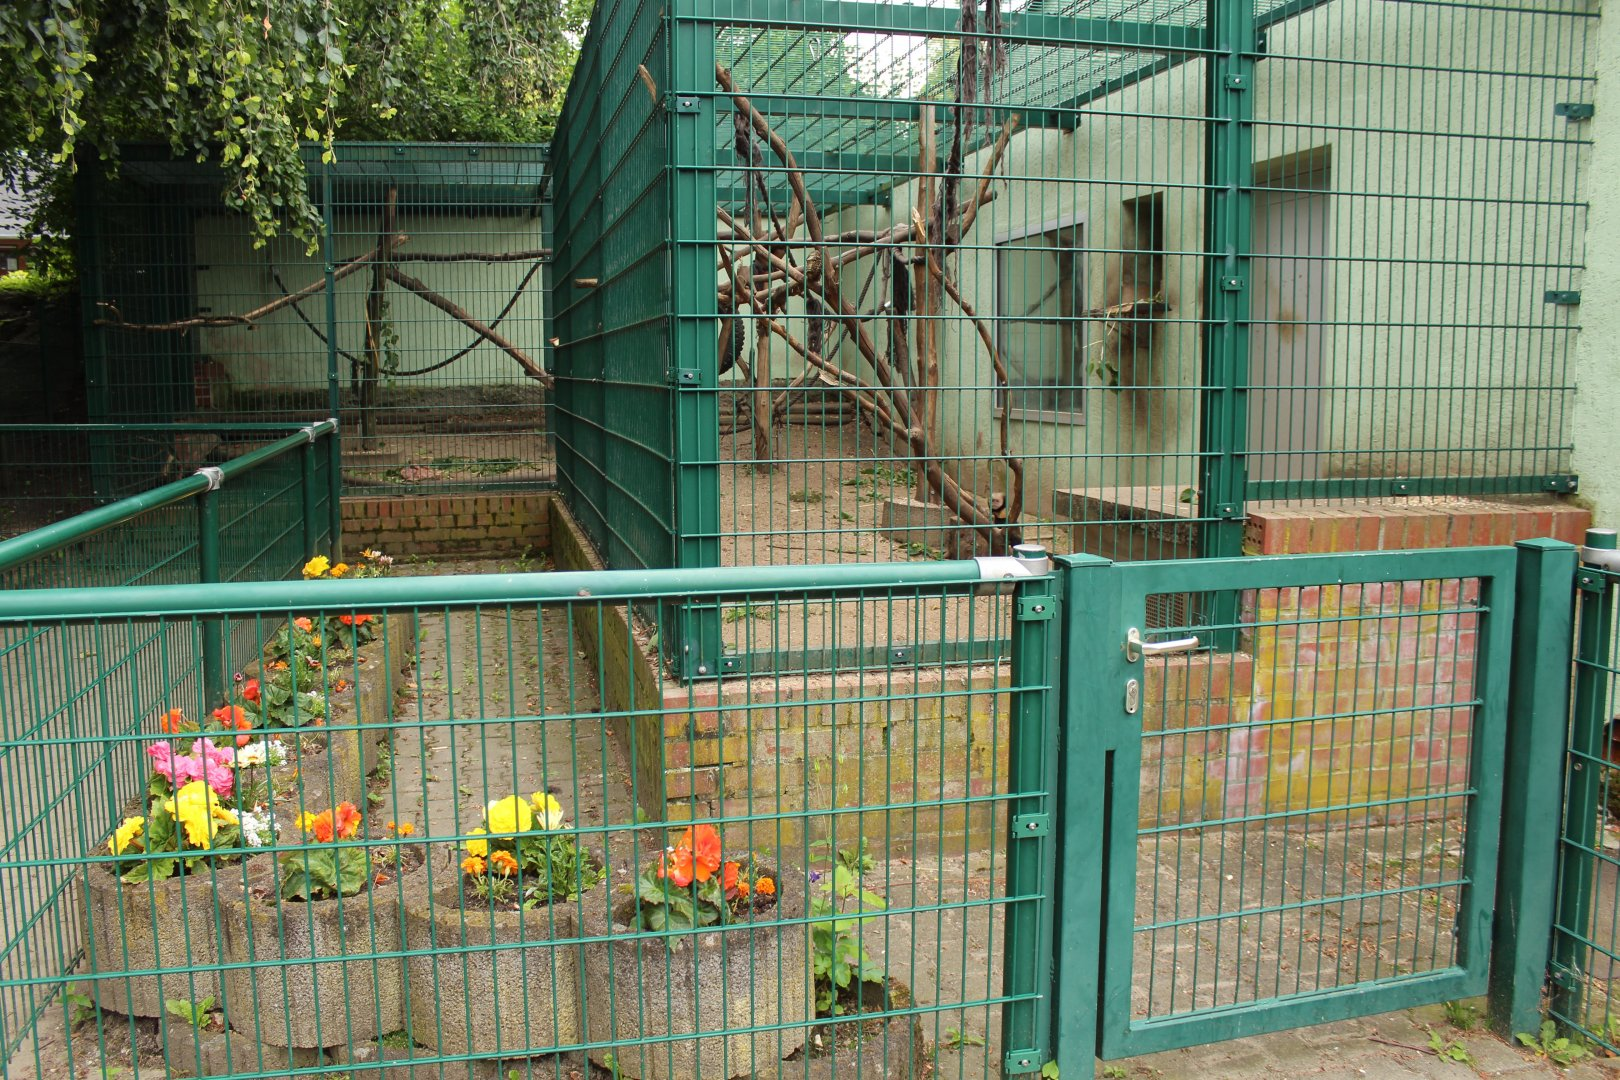 Moor Macaque Cage Tierpark Limbach Oberfrohna Zoochat